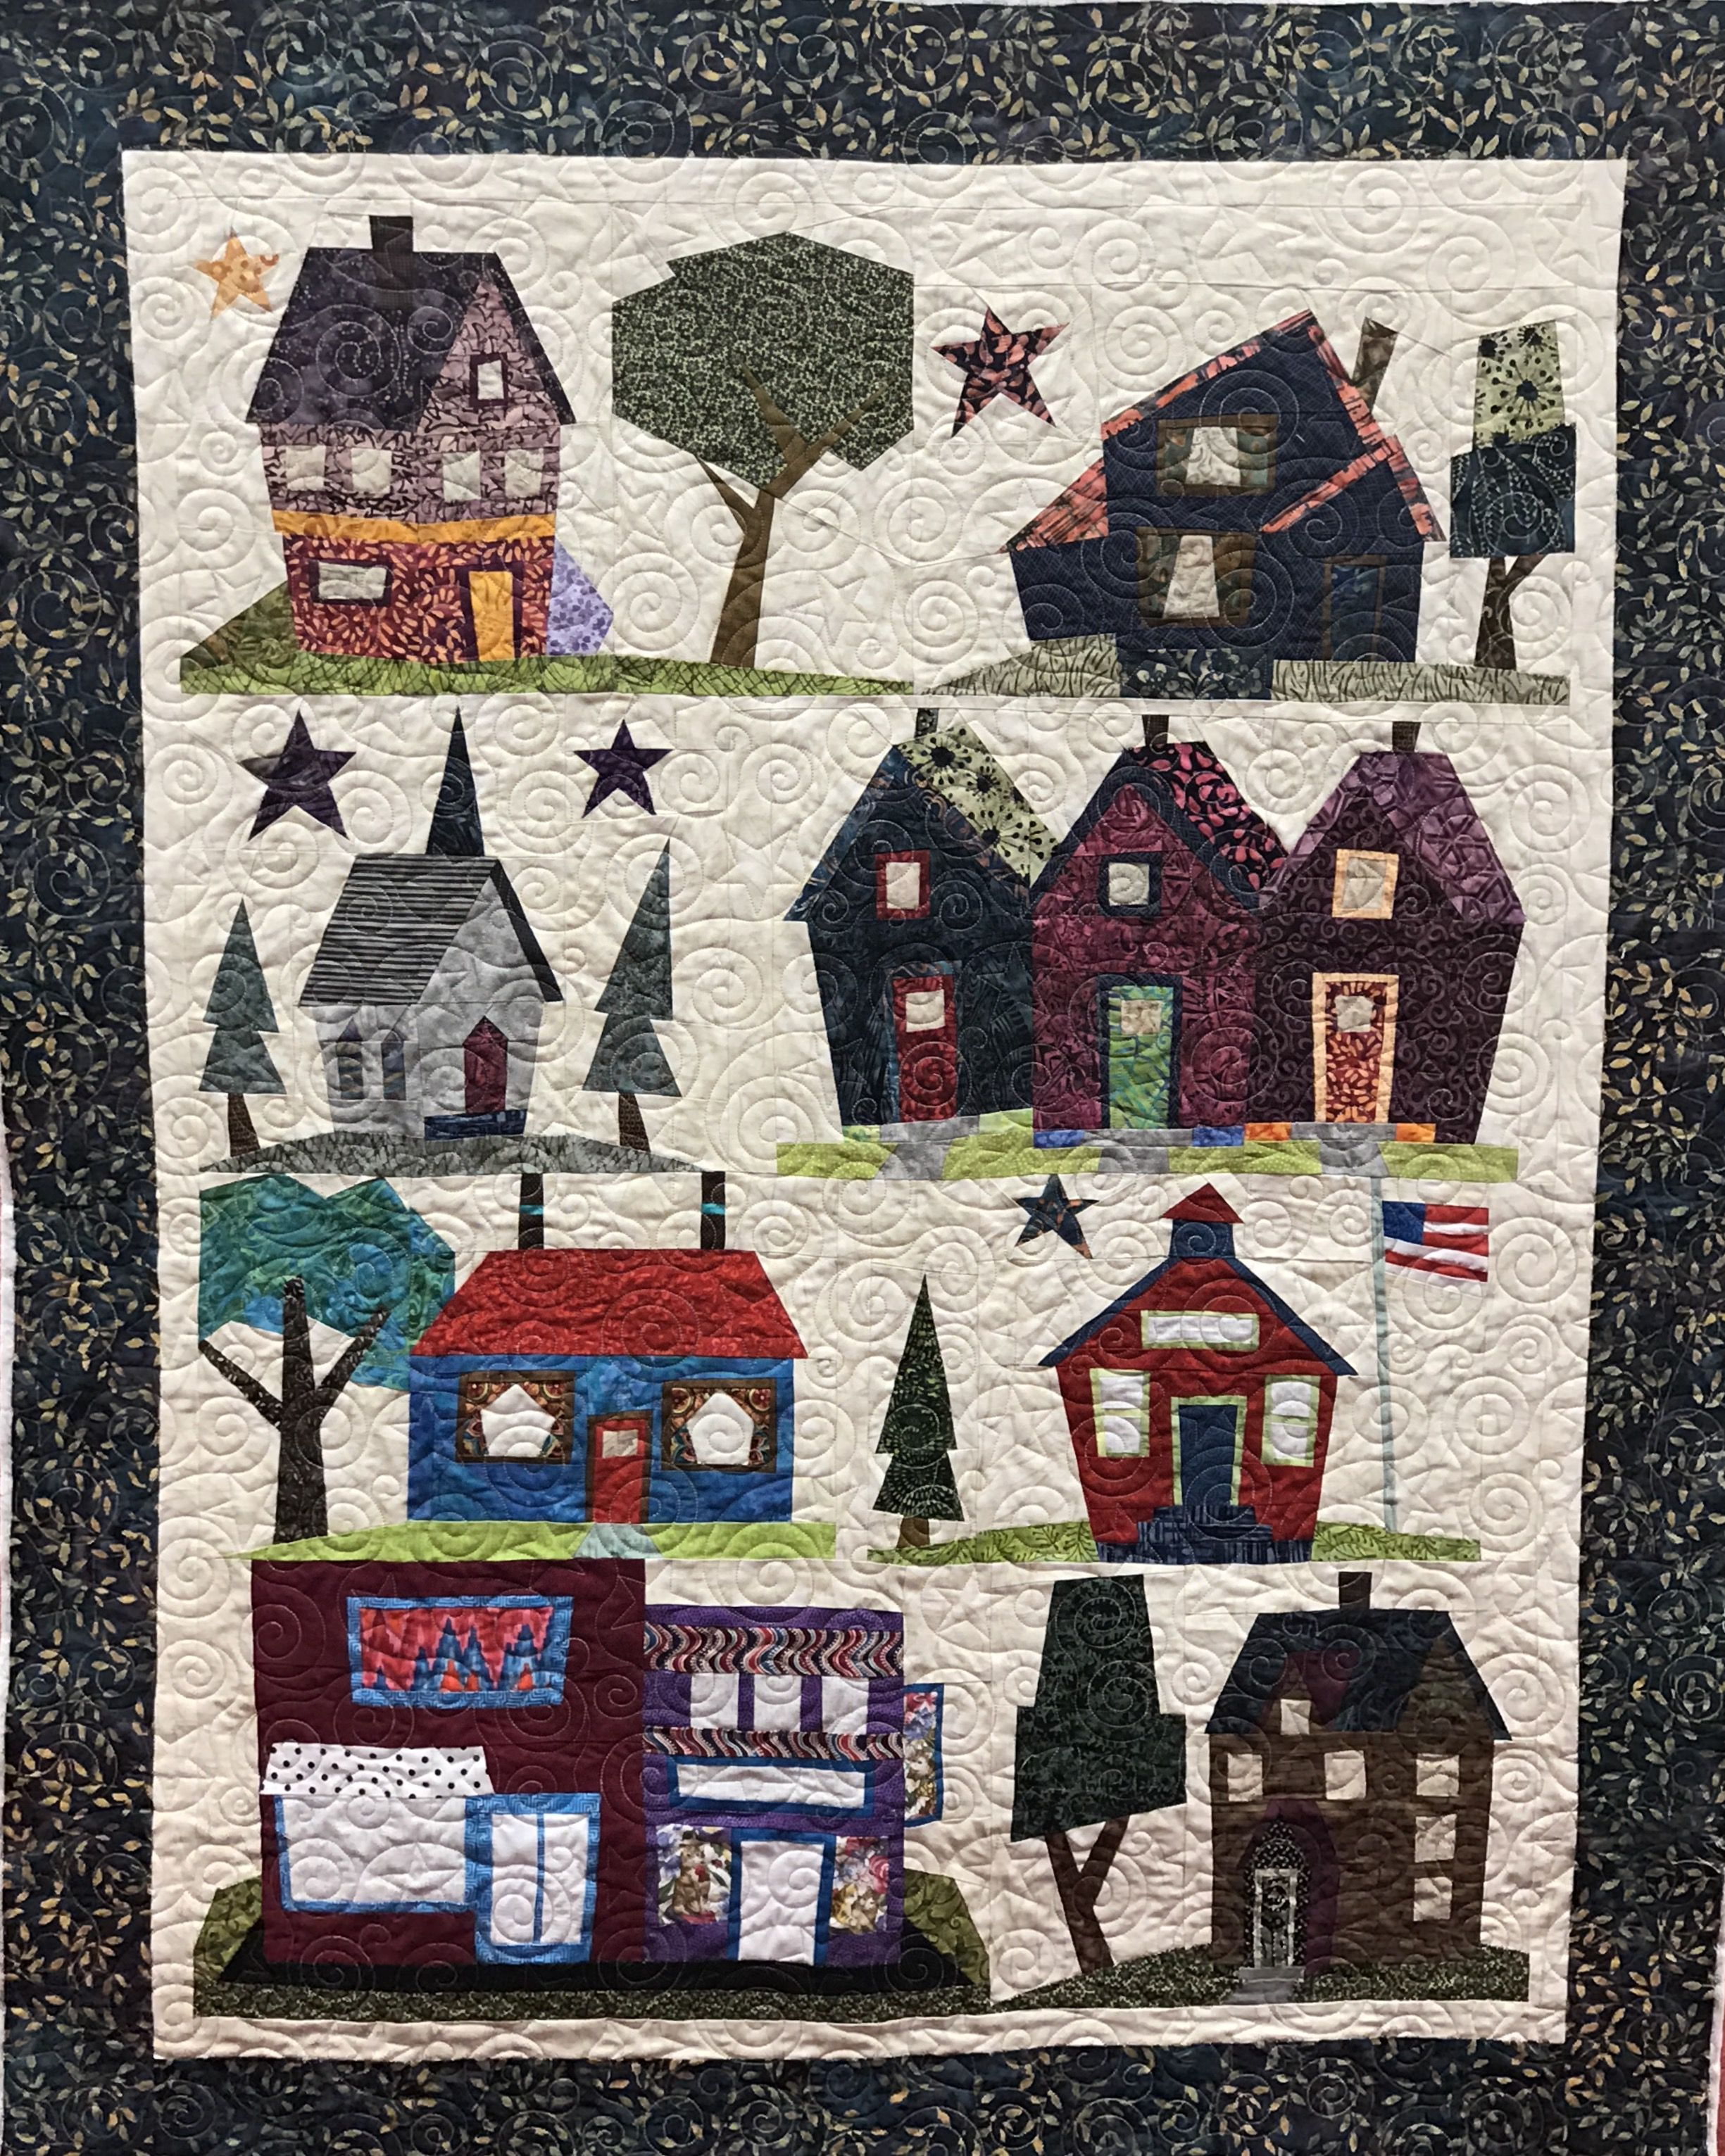 I Loved Making This Quilt It Was Fun To Be A Little Wonky And Play With Colors Paper Piecing Is One Of My Favorite House Quilt Patterns Quilt Patterns Quilts